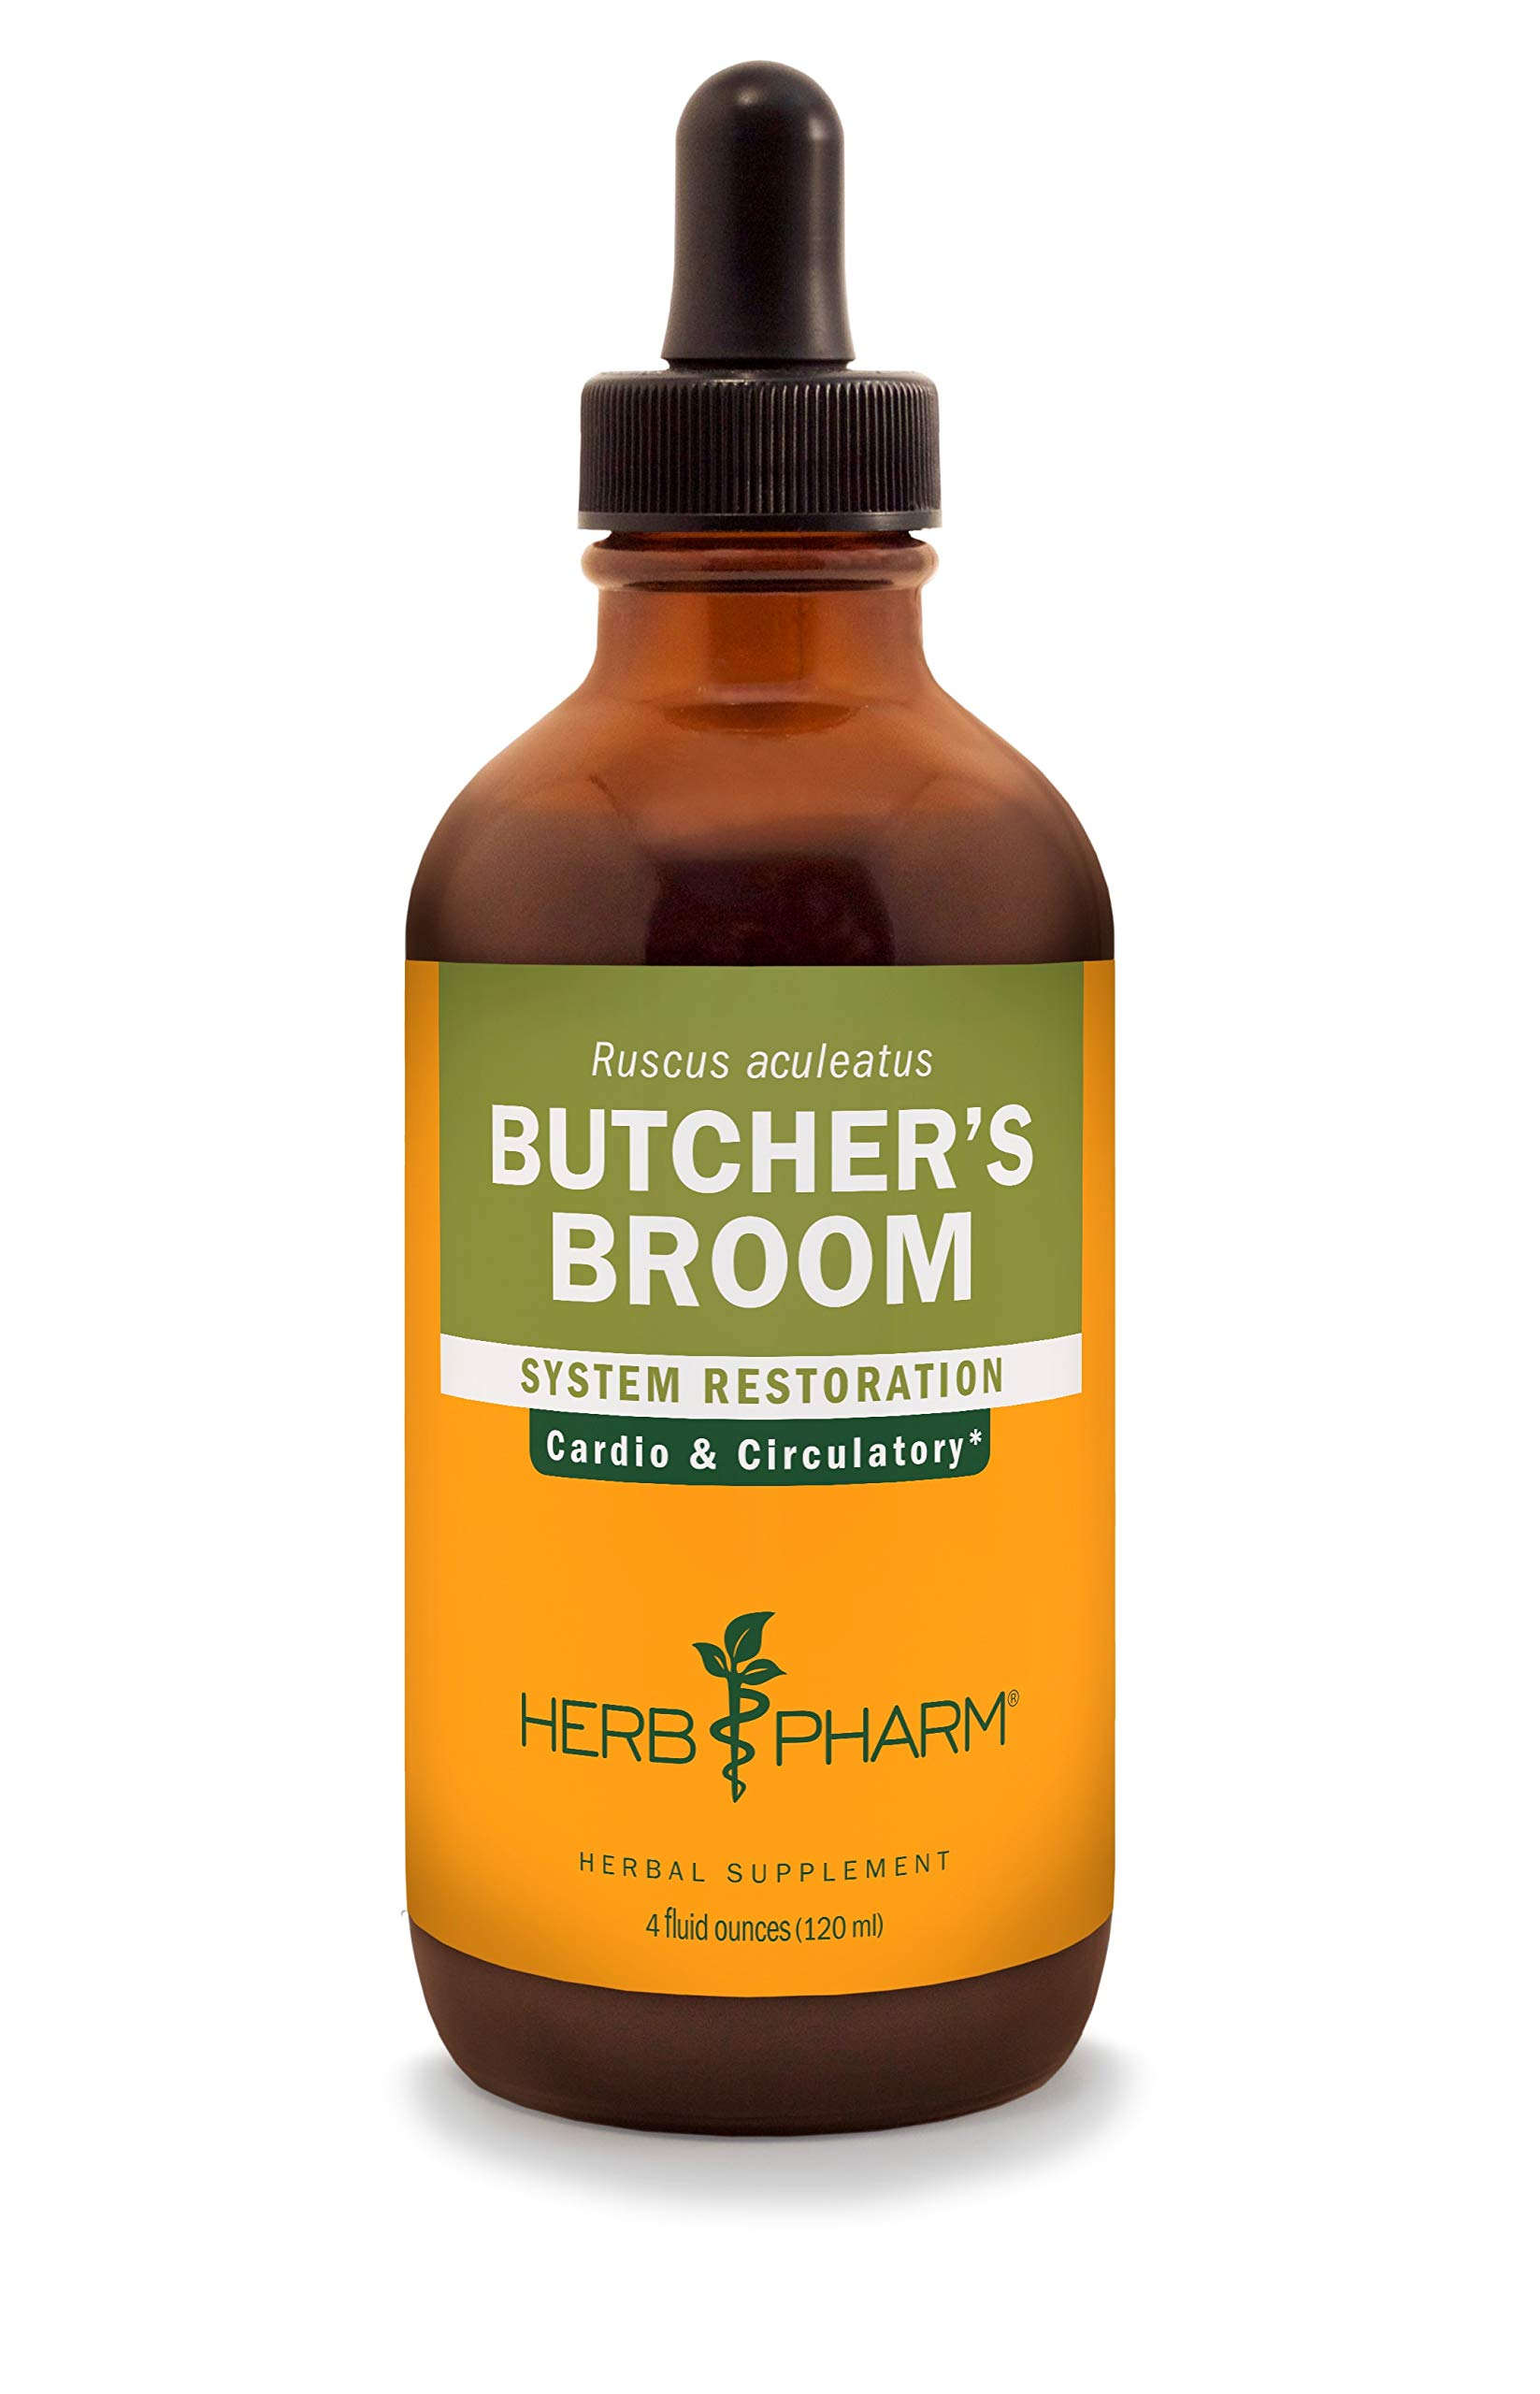 Herb Pharm Butcher's Broom Liquid Extract for Cardiovascular and Circulatory Support - 4 Ounce